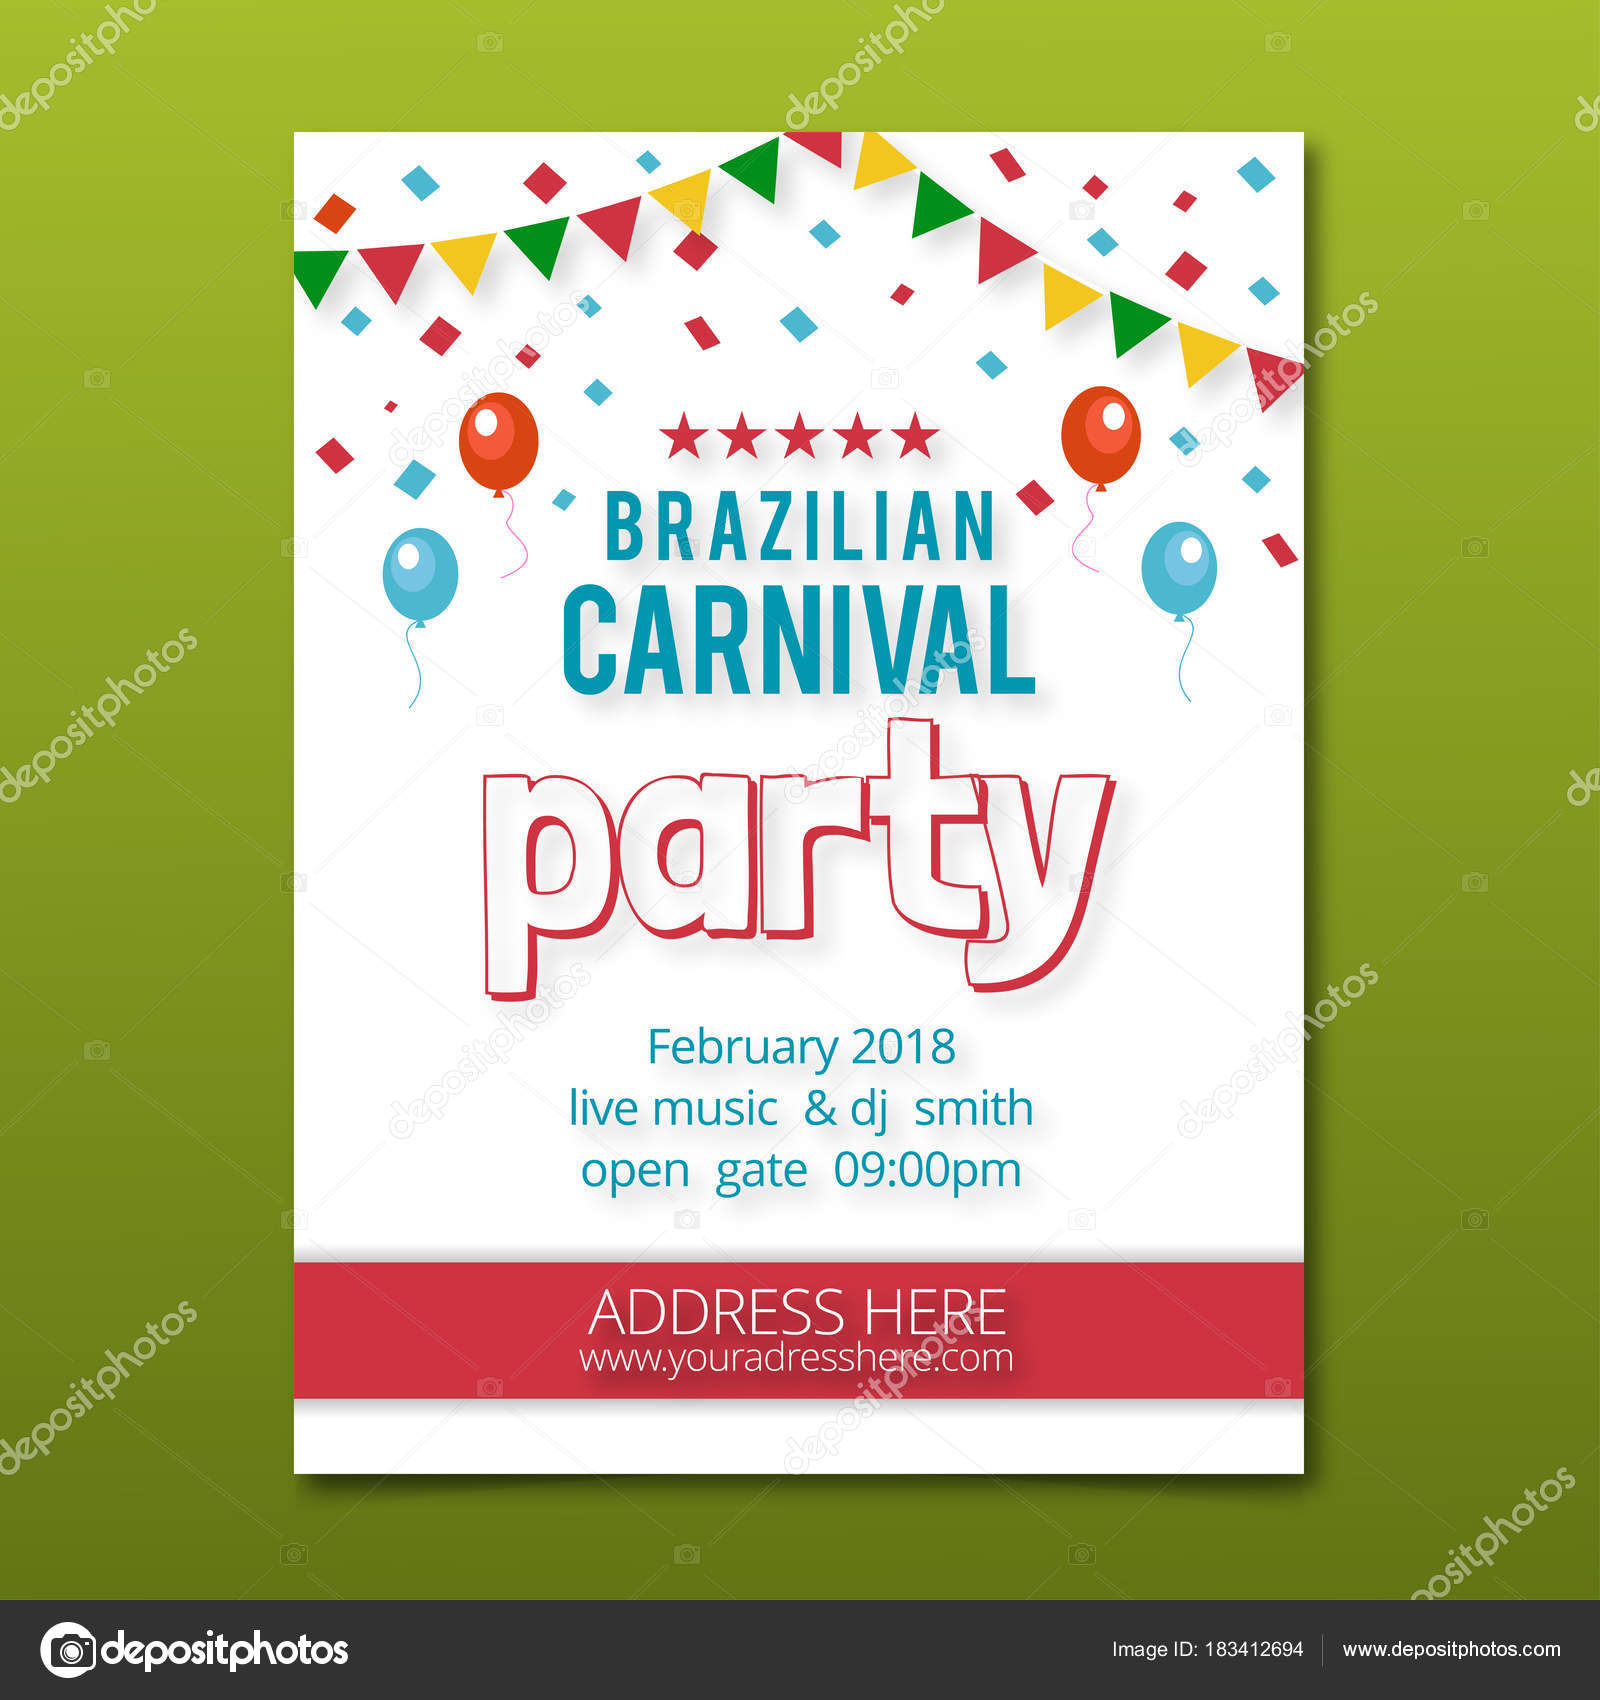 brazilian carnival party invitation card white color having